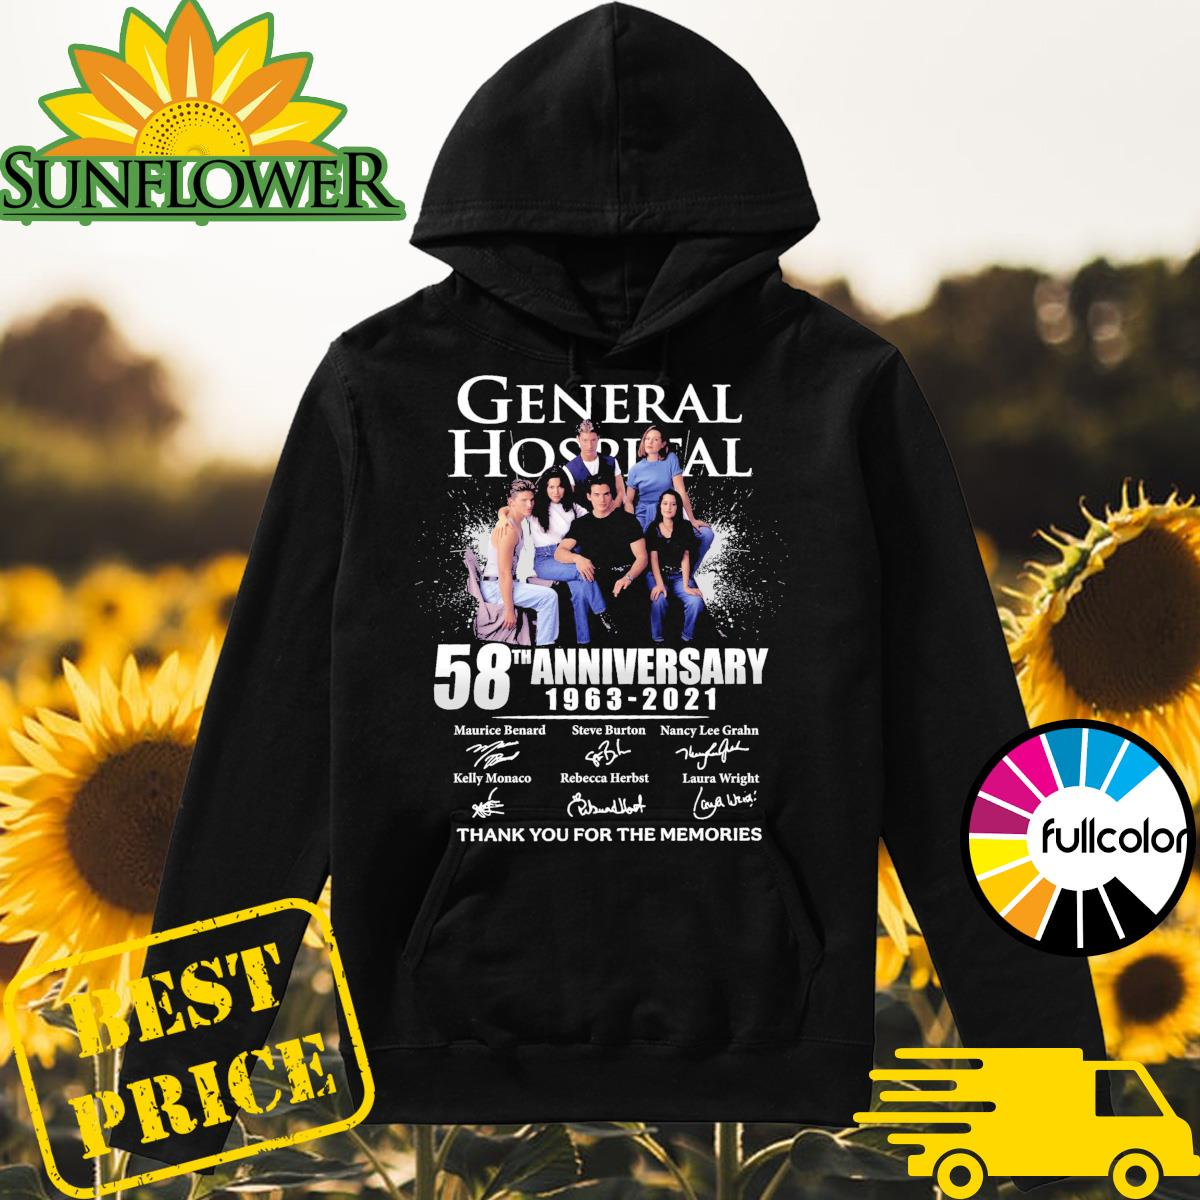 General Hospital 58th Anniversary 1963 2021 Signatures Thank You For The Memories Shirt Hoodie